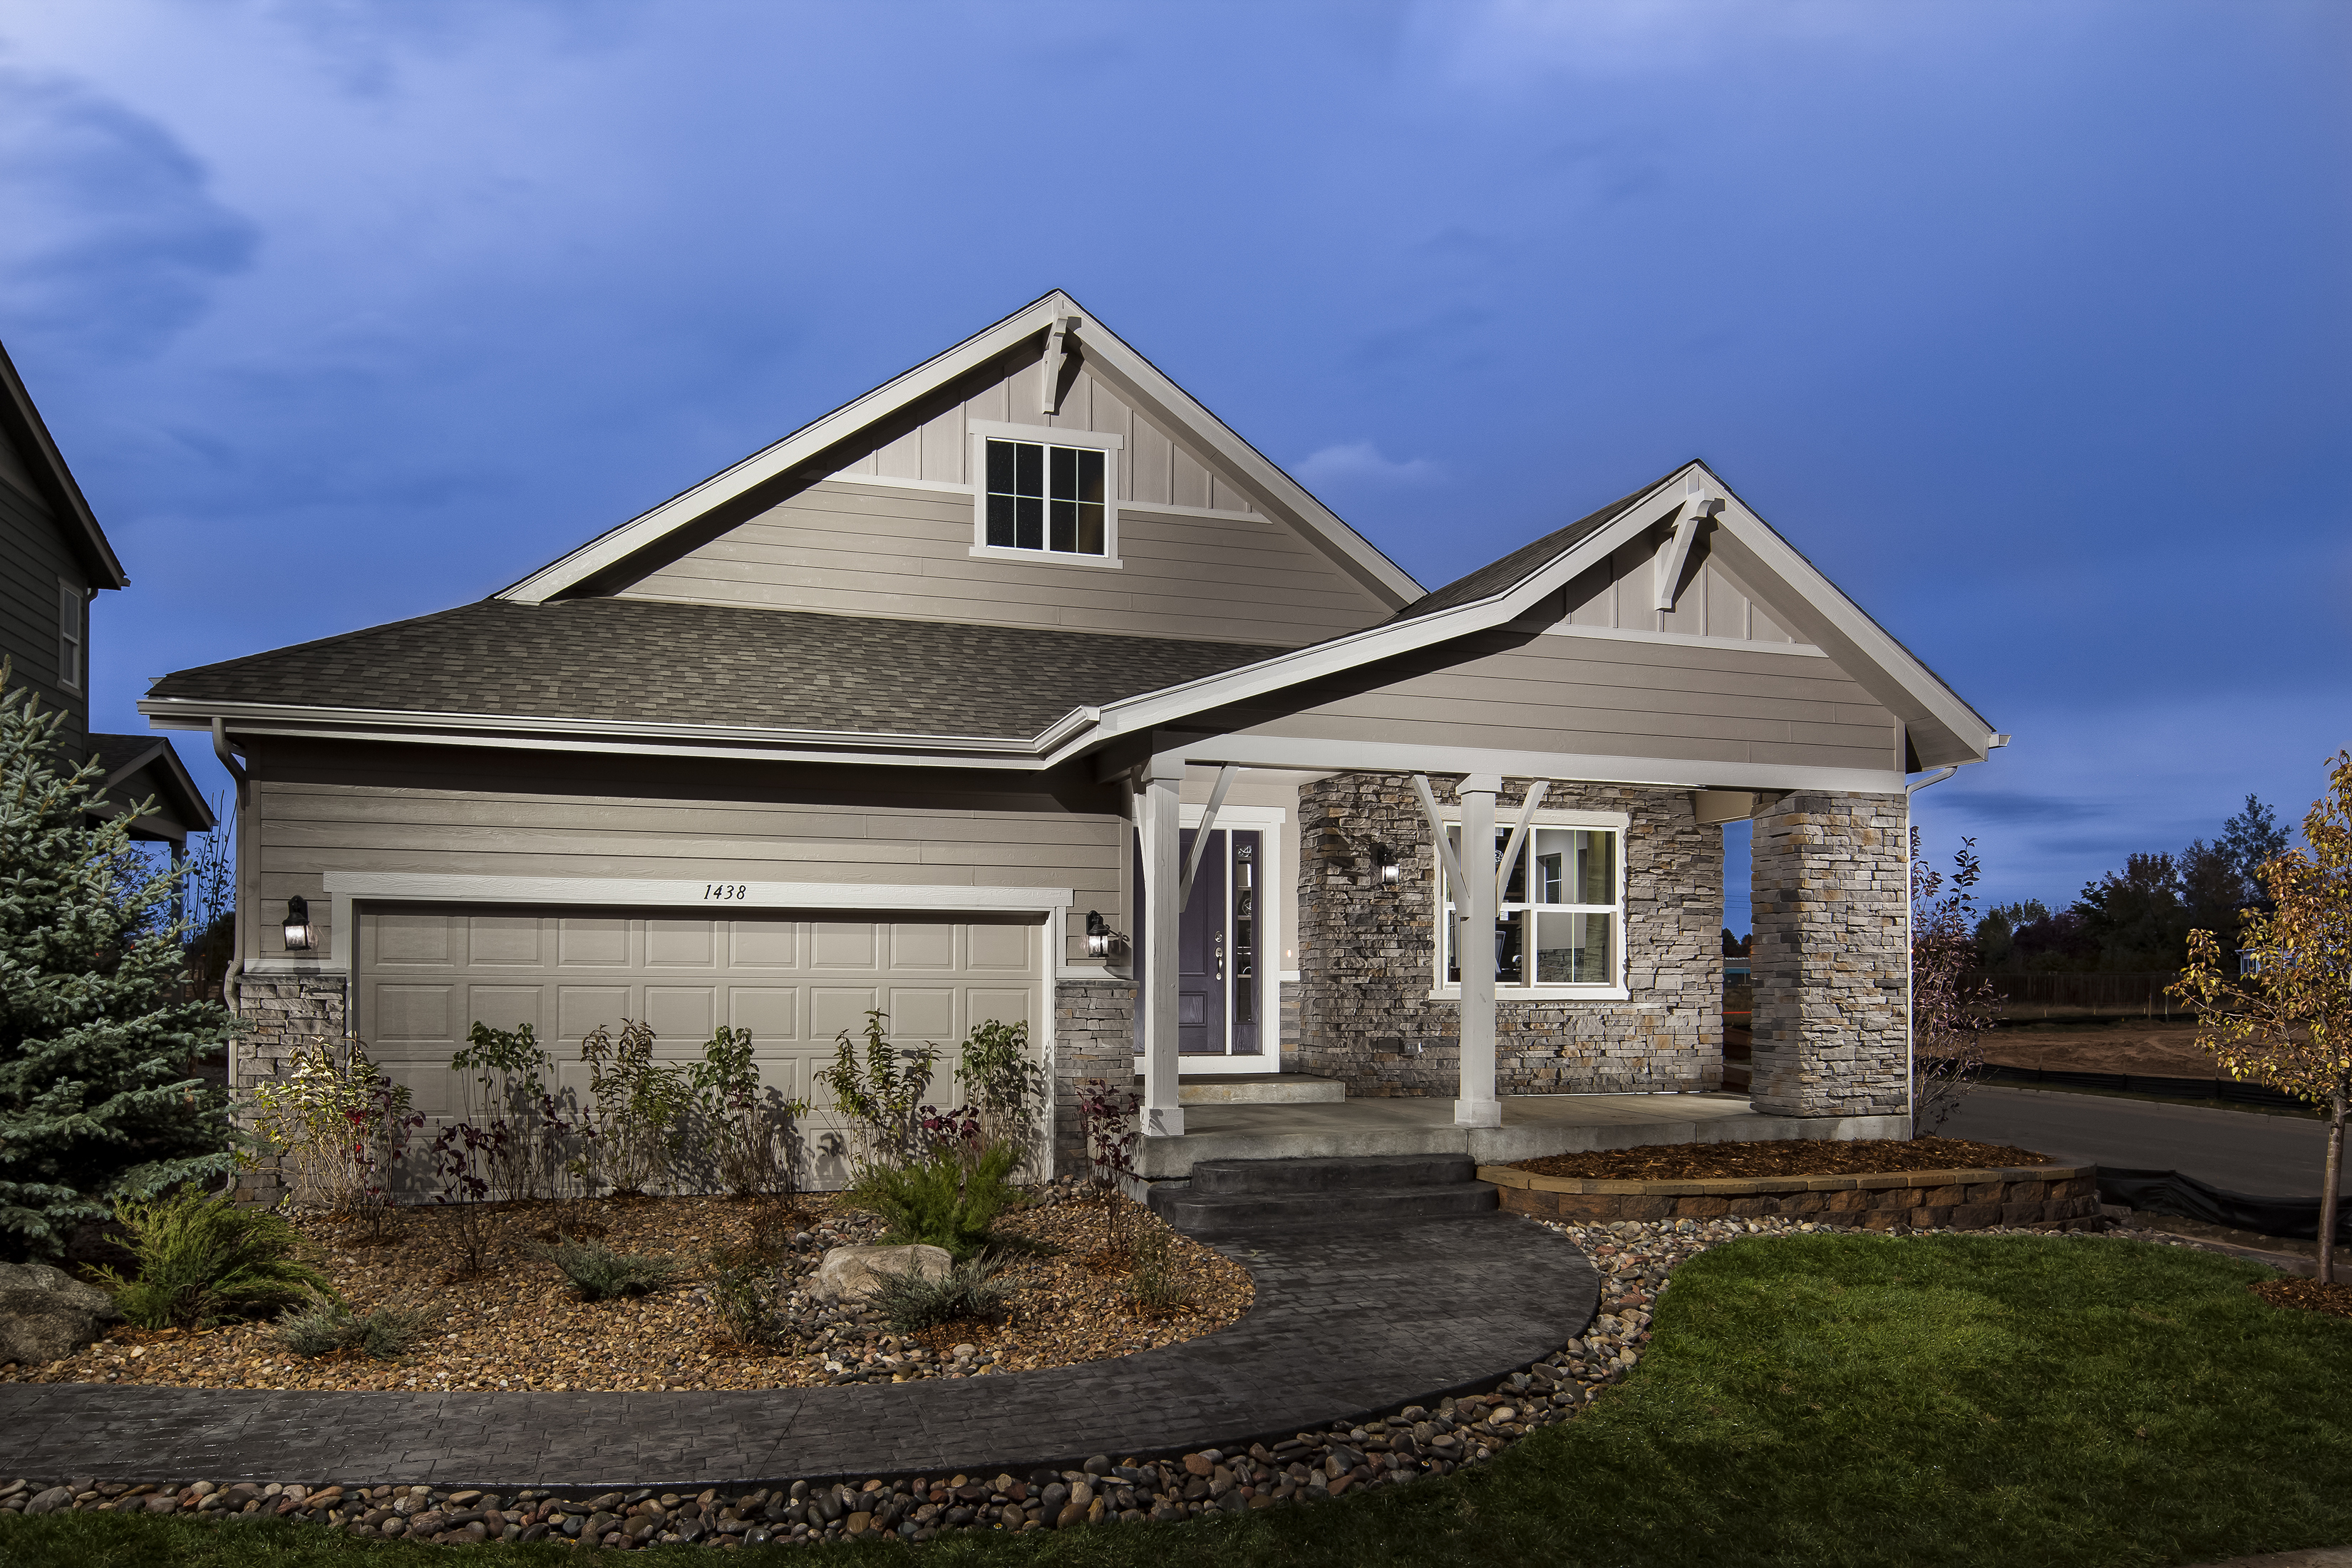 ryland homes introduces water valley in windsor co business wire - Ryland Homes Colorado Floor Plans